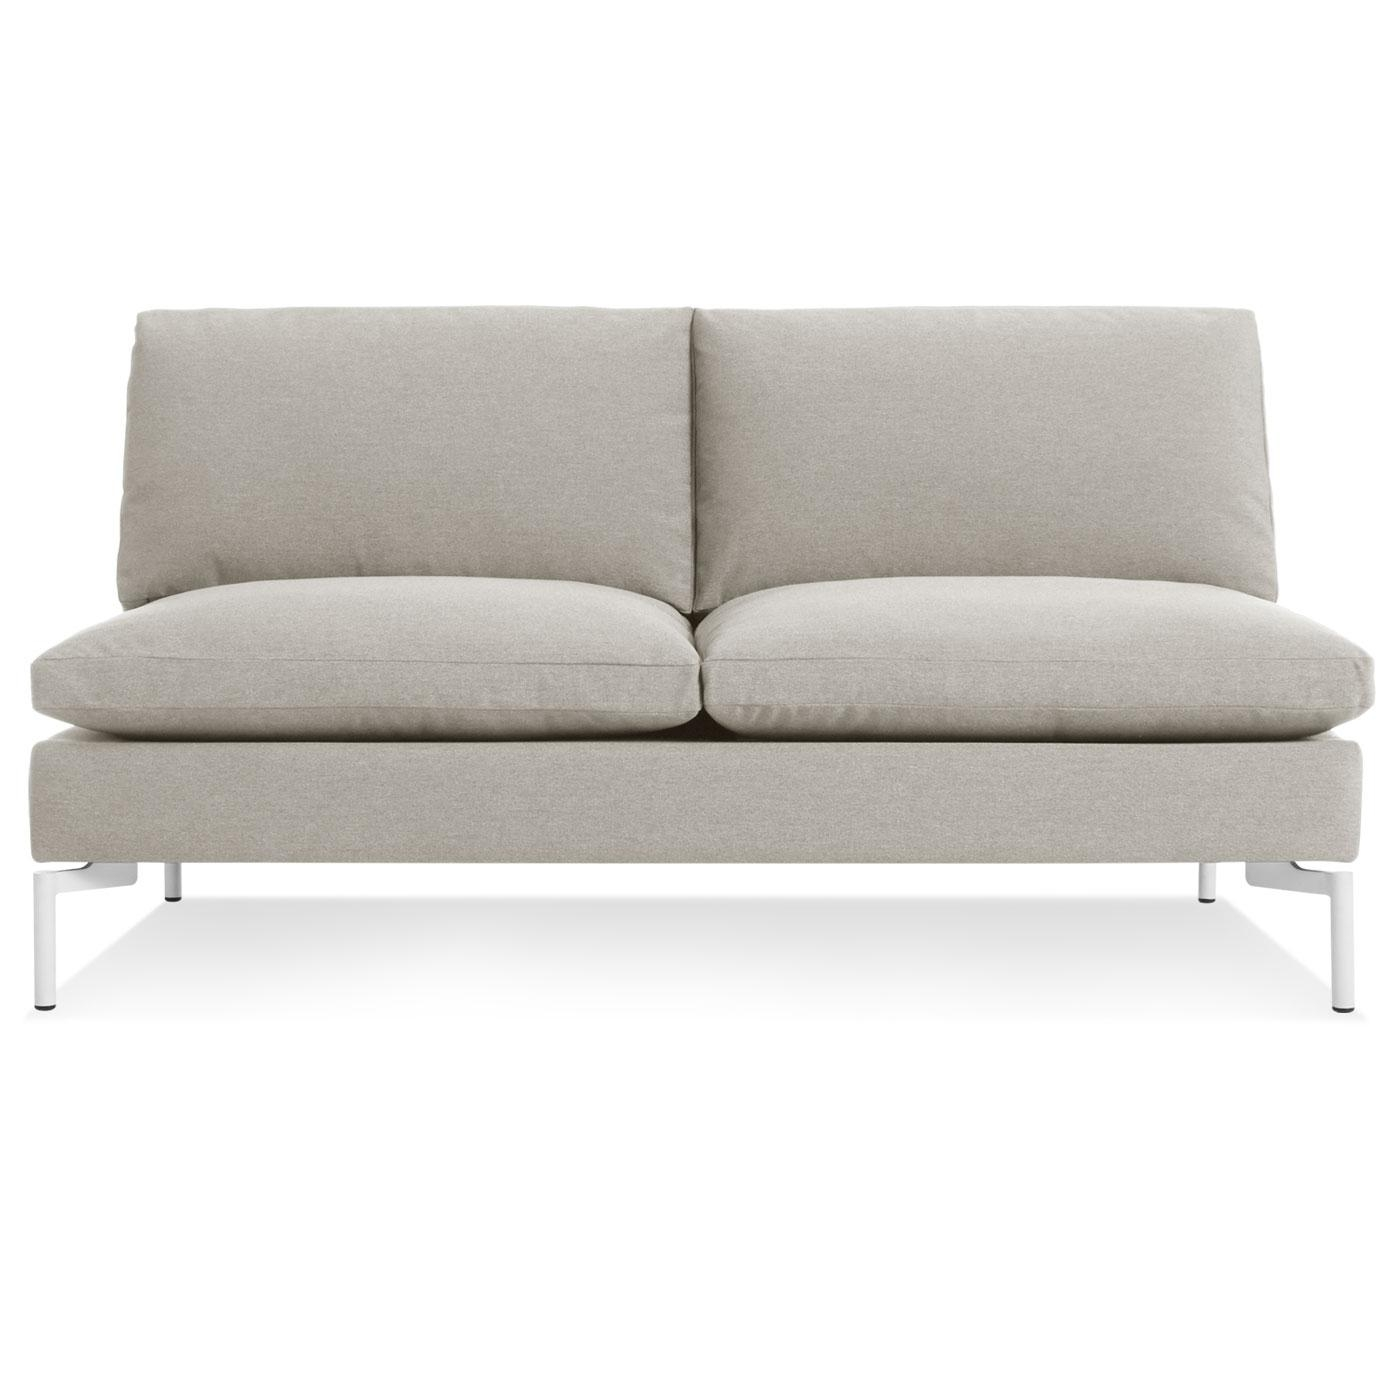 New Standard Armless Sofa – Armless Sofas | Blu Dot Intended For Blu Dot Sofas (Image 17 of 20)